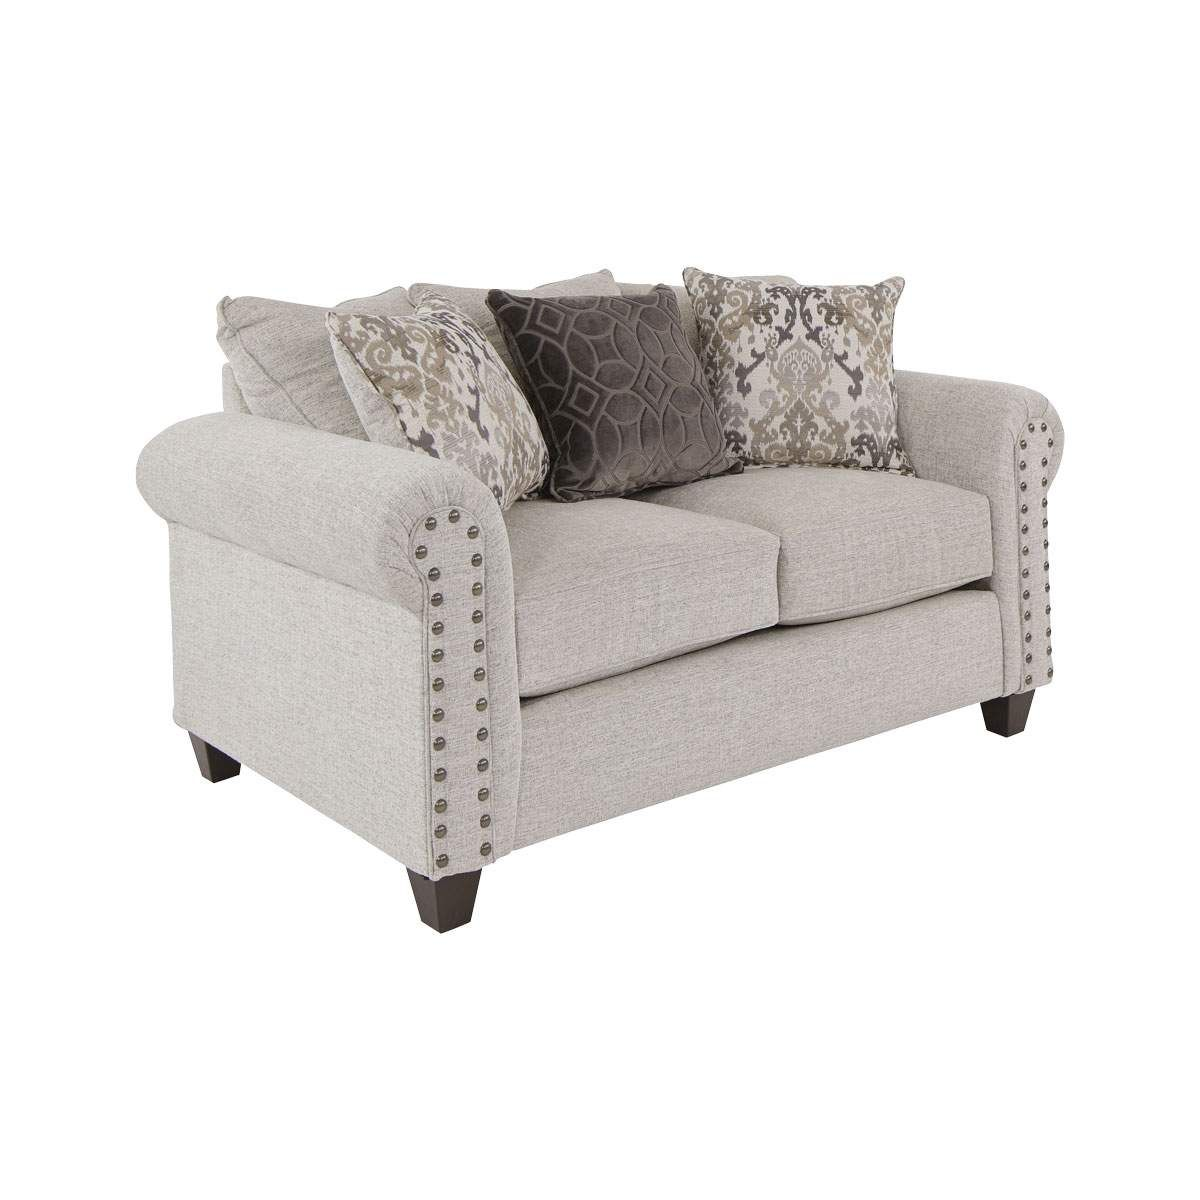 Swell Paula Sofa Loveseat In Linen Jeromes Furniture Things Pdpeps Interior Chair Design Pdpepsorg